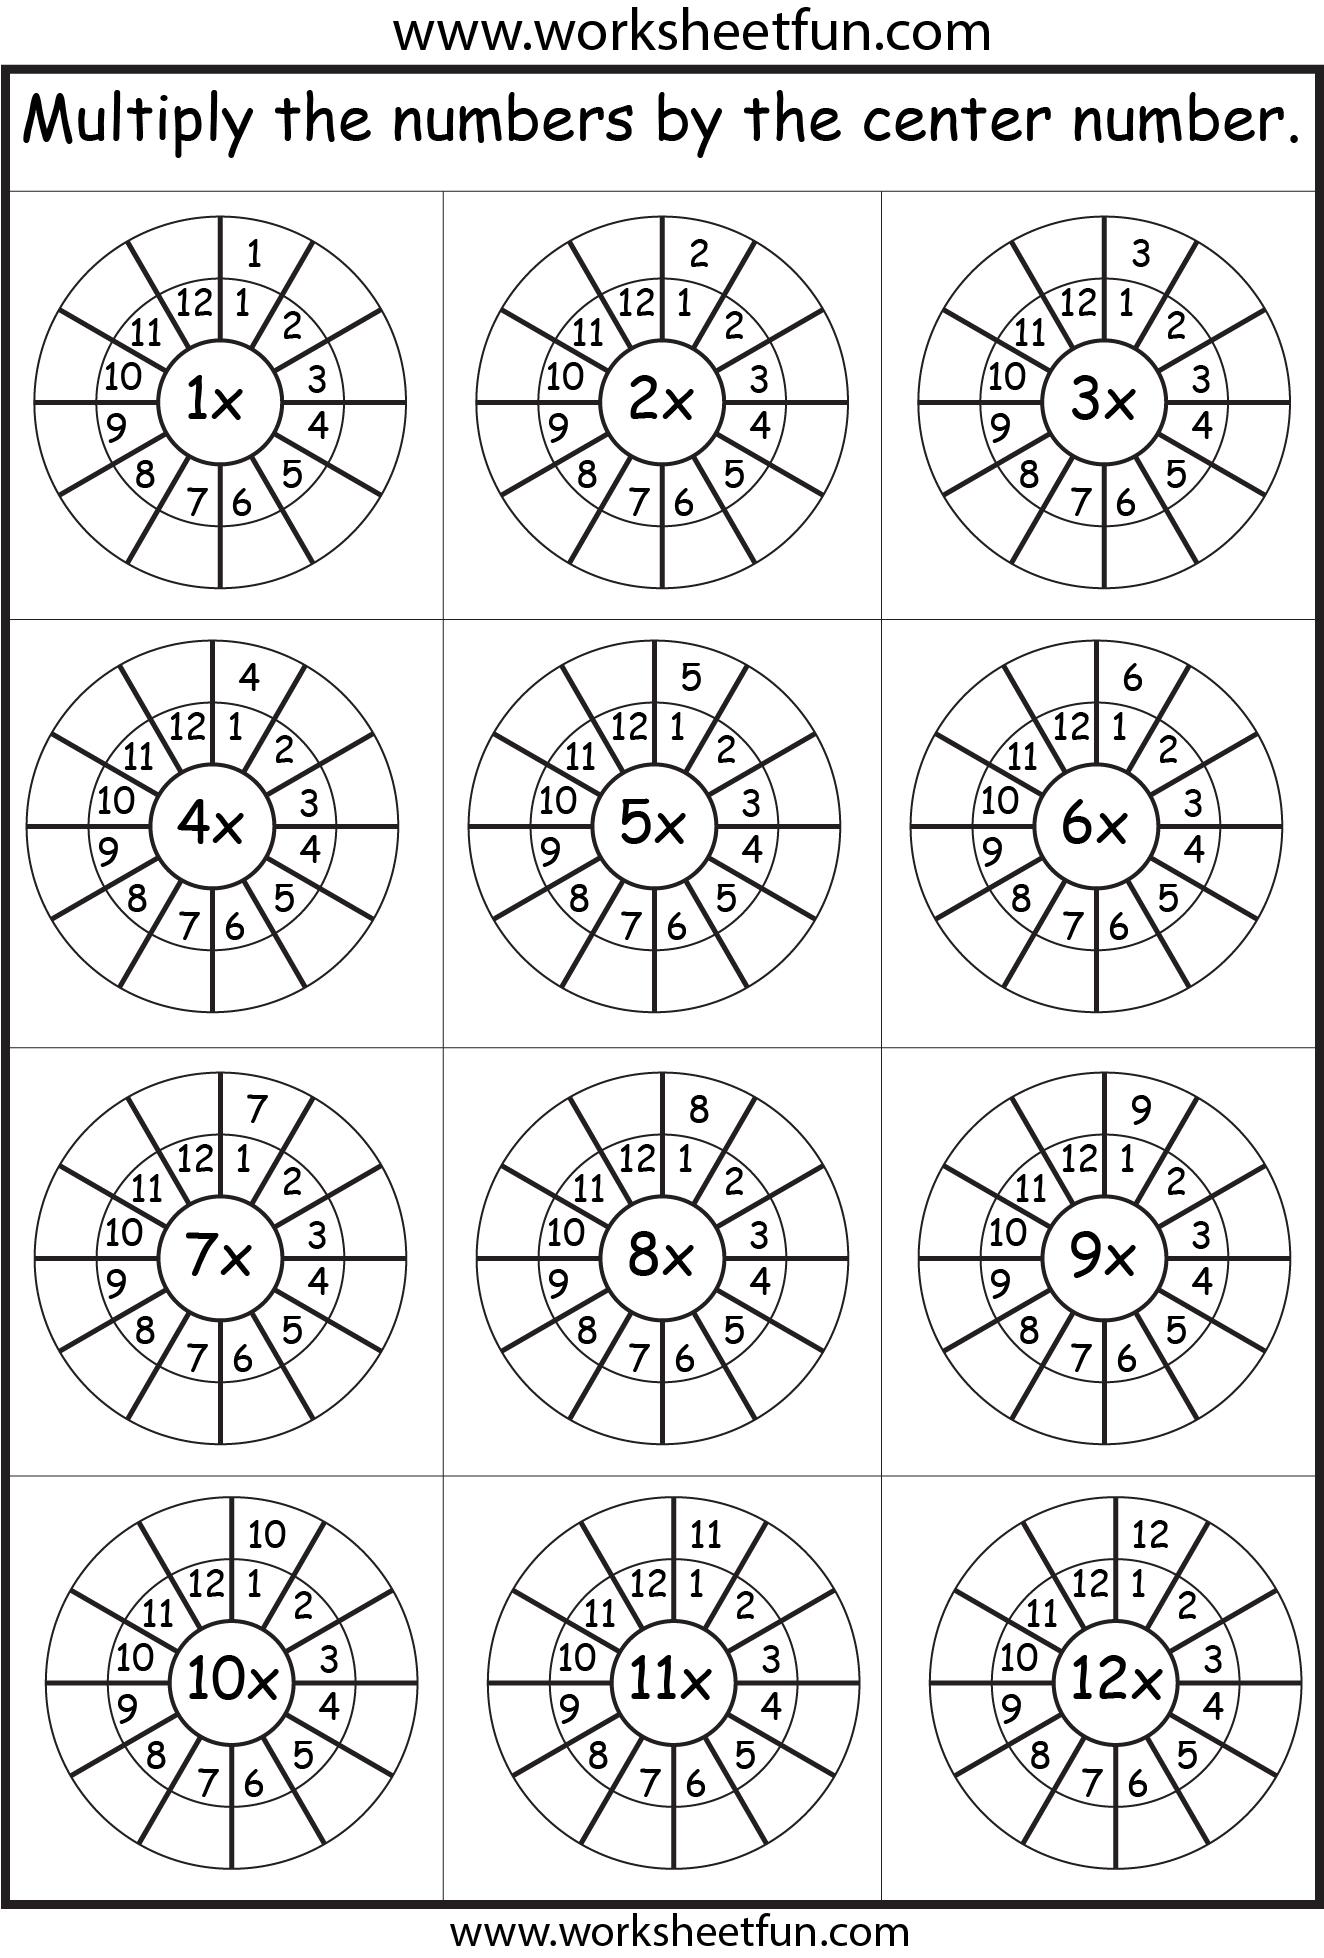 Worksheet Free Printable Multiplication Worksheets Grade 4 17 best images about multiplication worksheets on pinterest circles math and twenty four